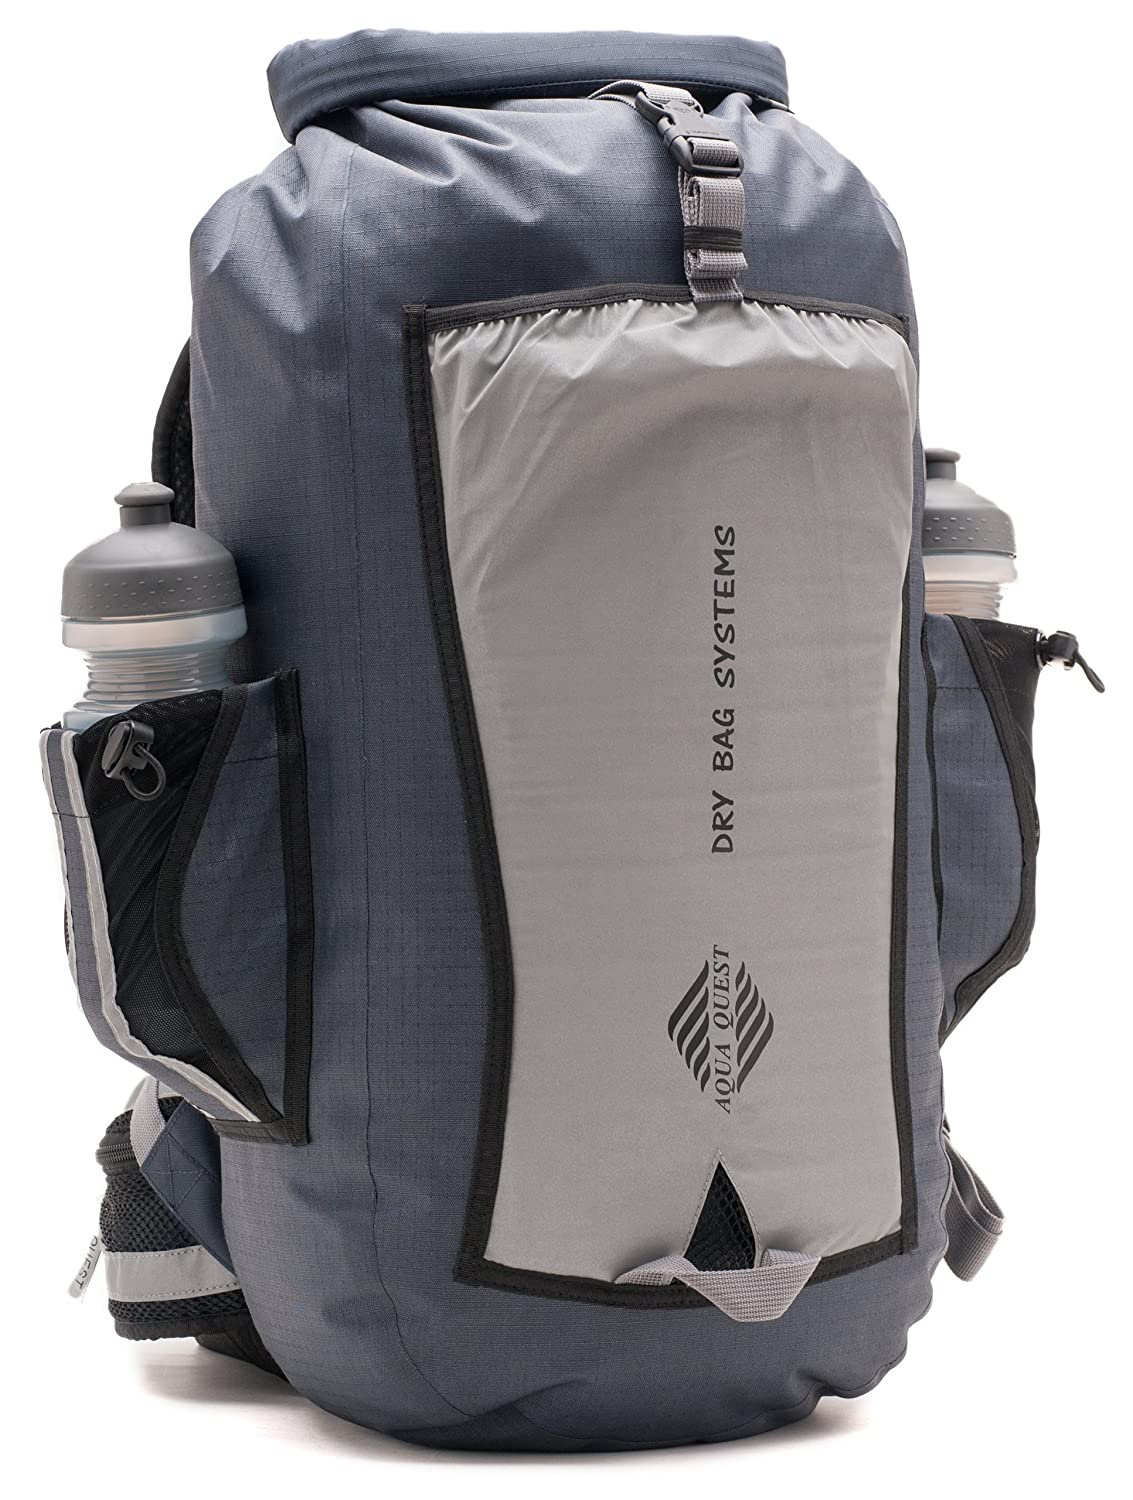 Amazon.com : Aqua Quest SPORT 25 PRO Gray Waterproof Backpack with ...